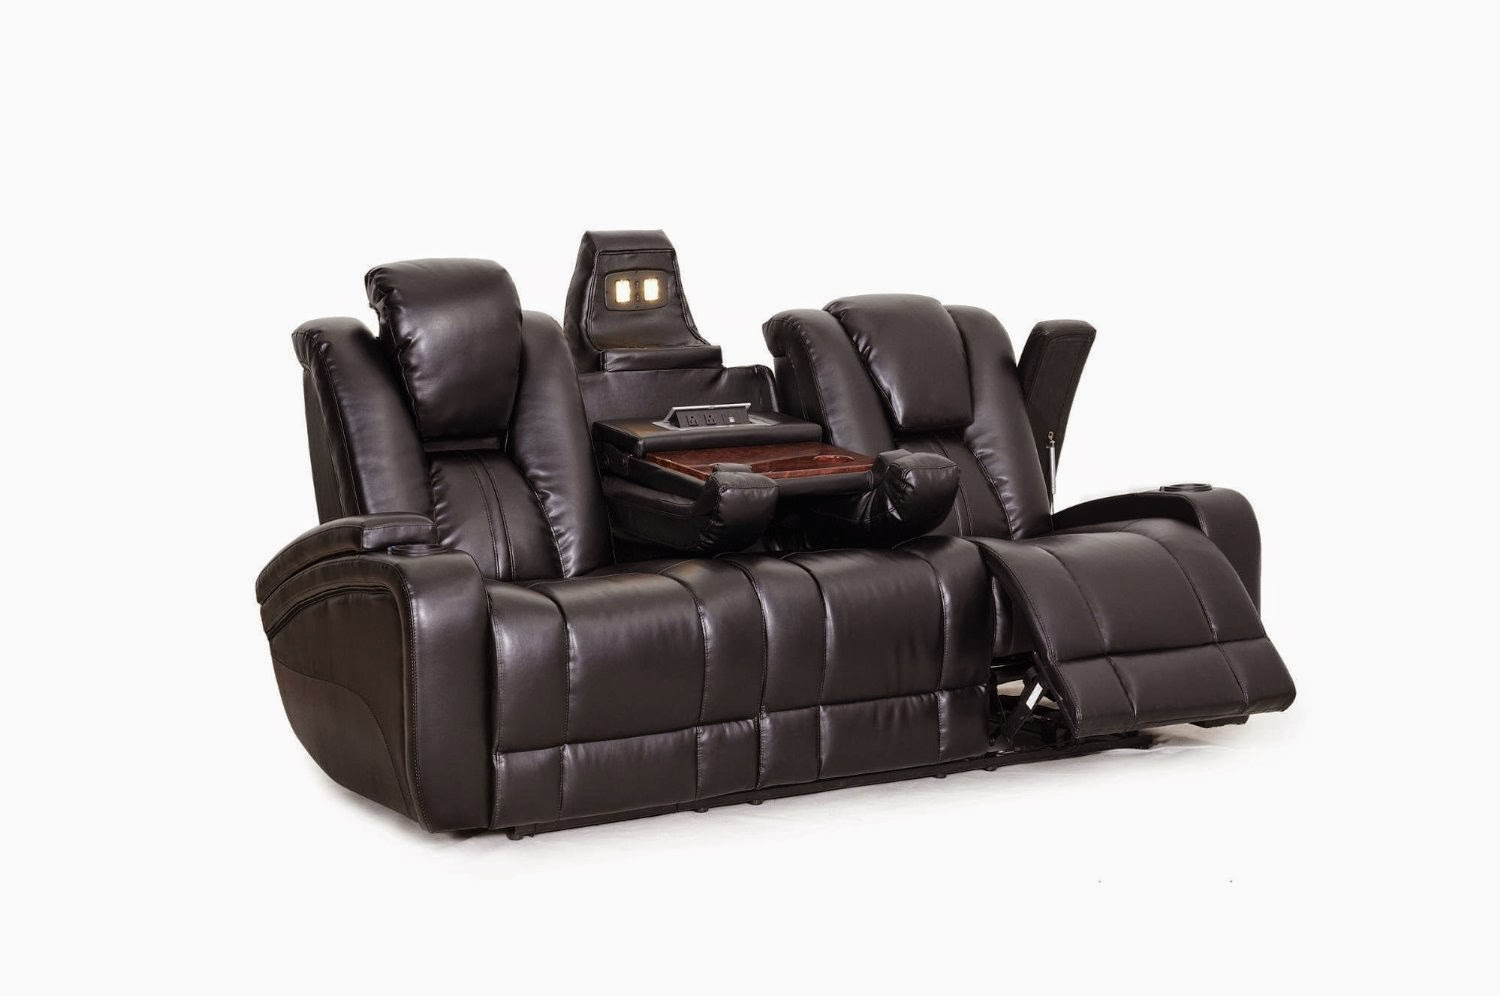 Cheap Reclining Sofas Sale: Hawkeye Double Reclining Sofa ...